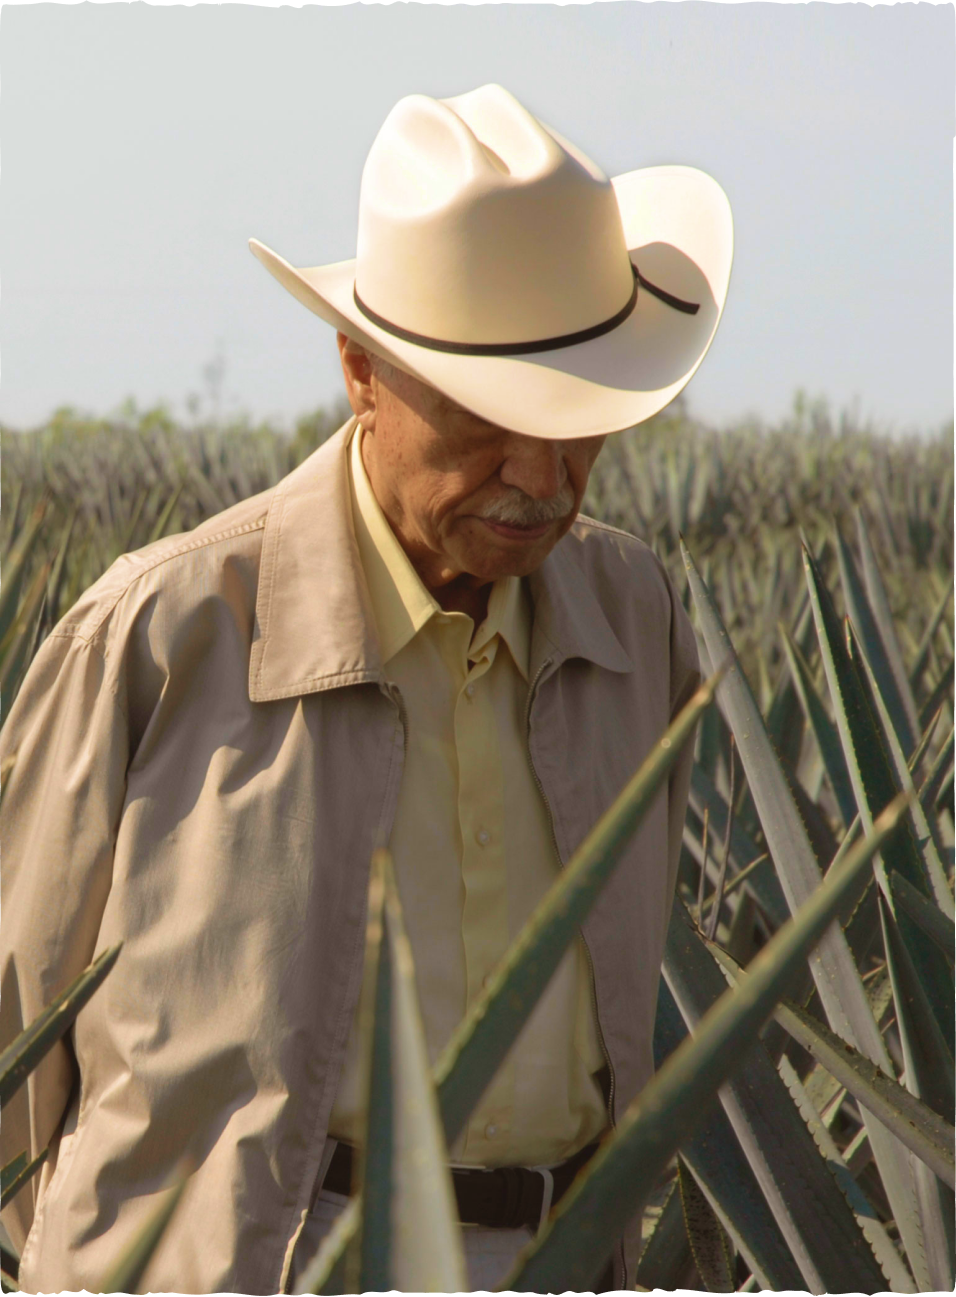 Don Julio González at a Tequila Agave Farm